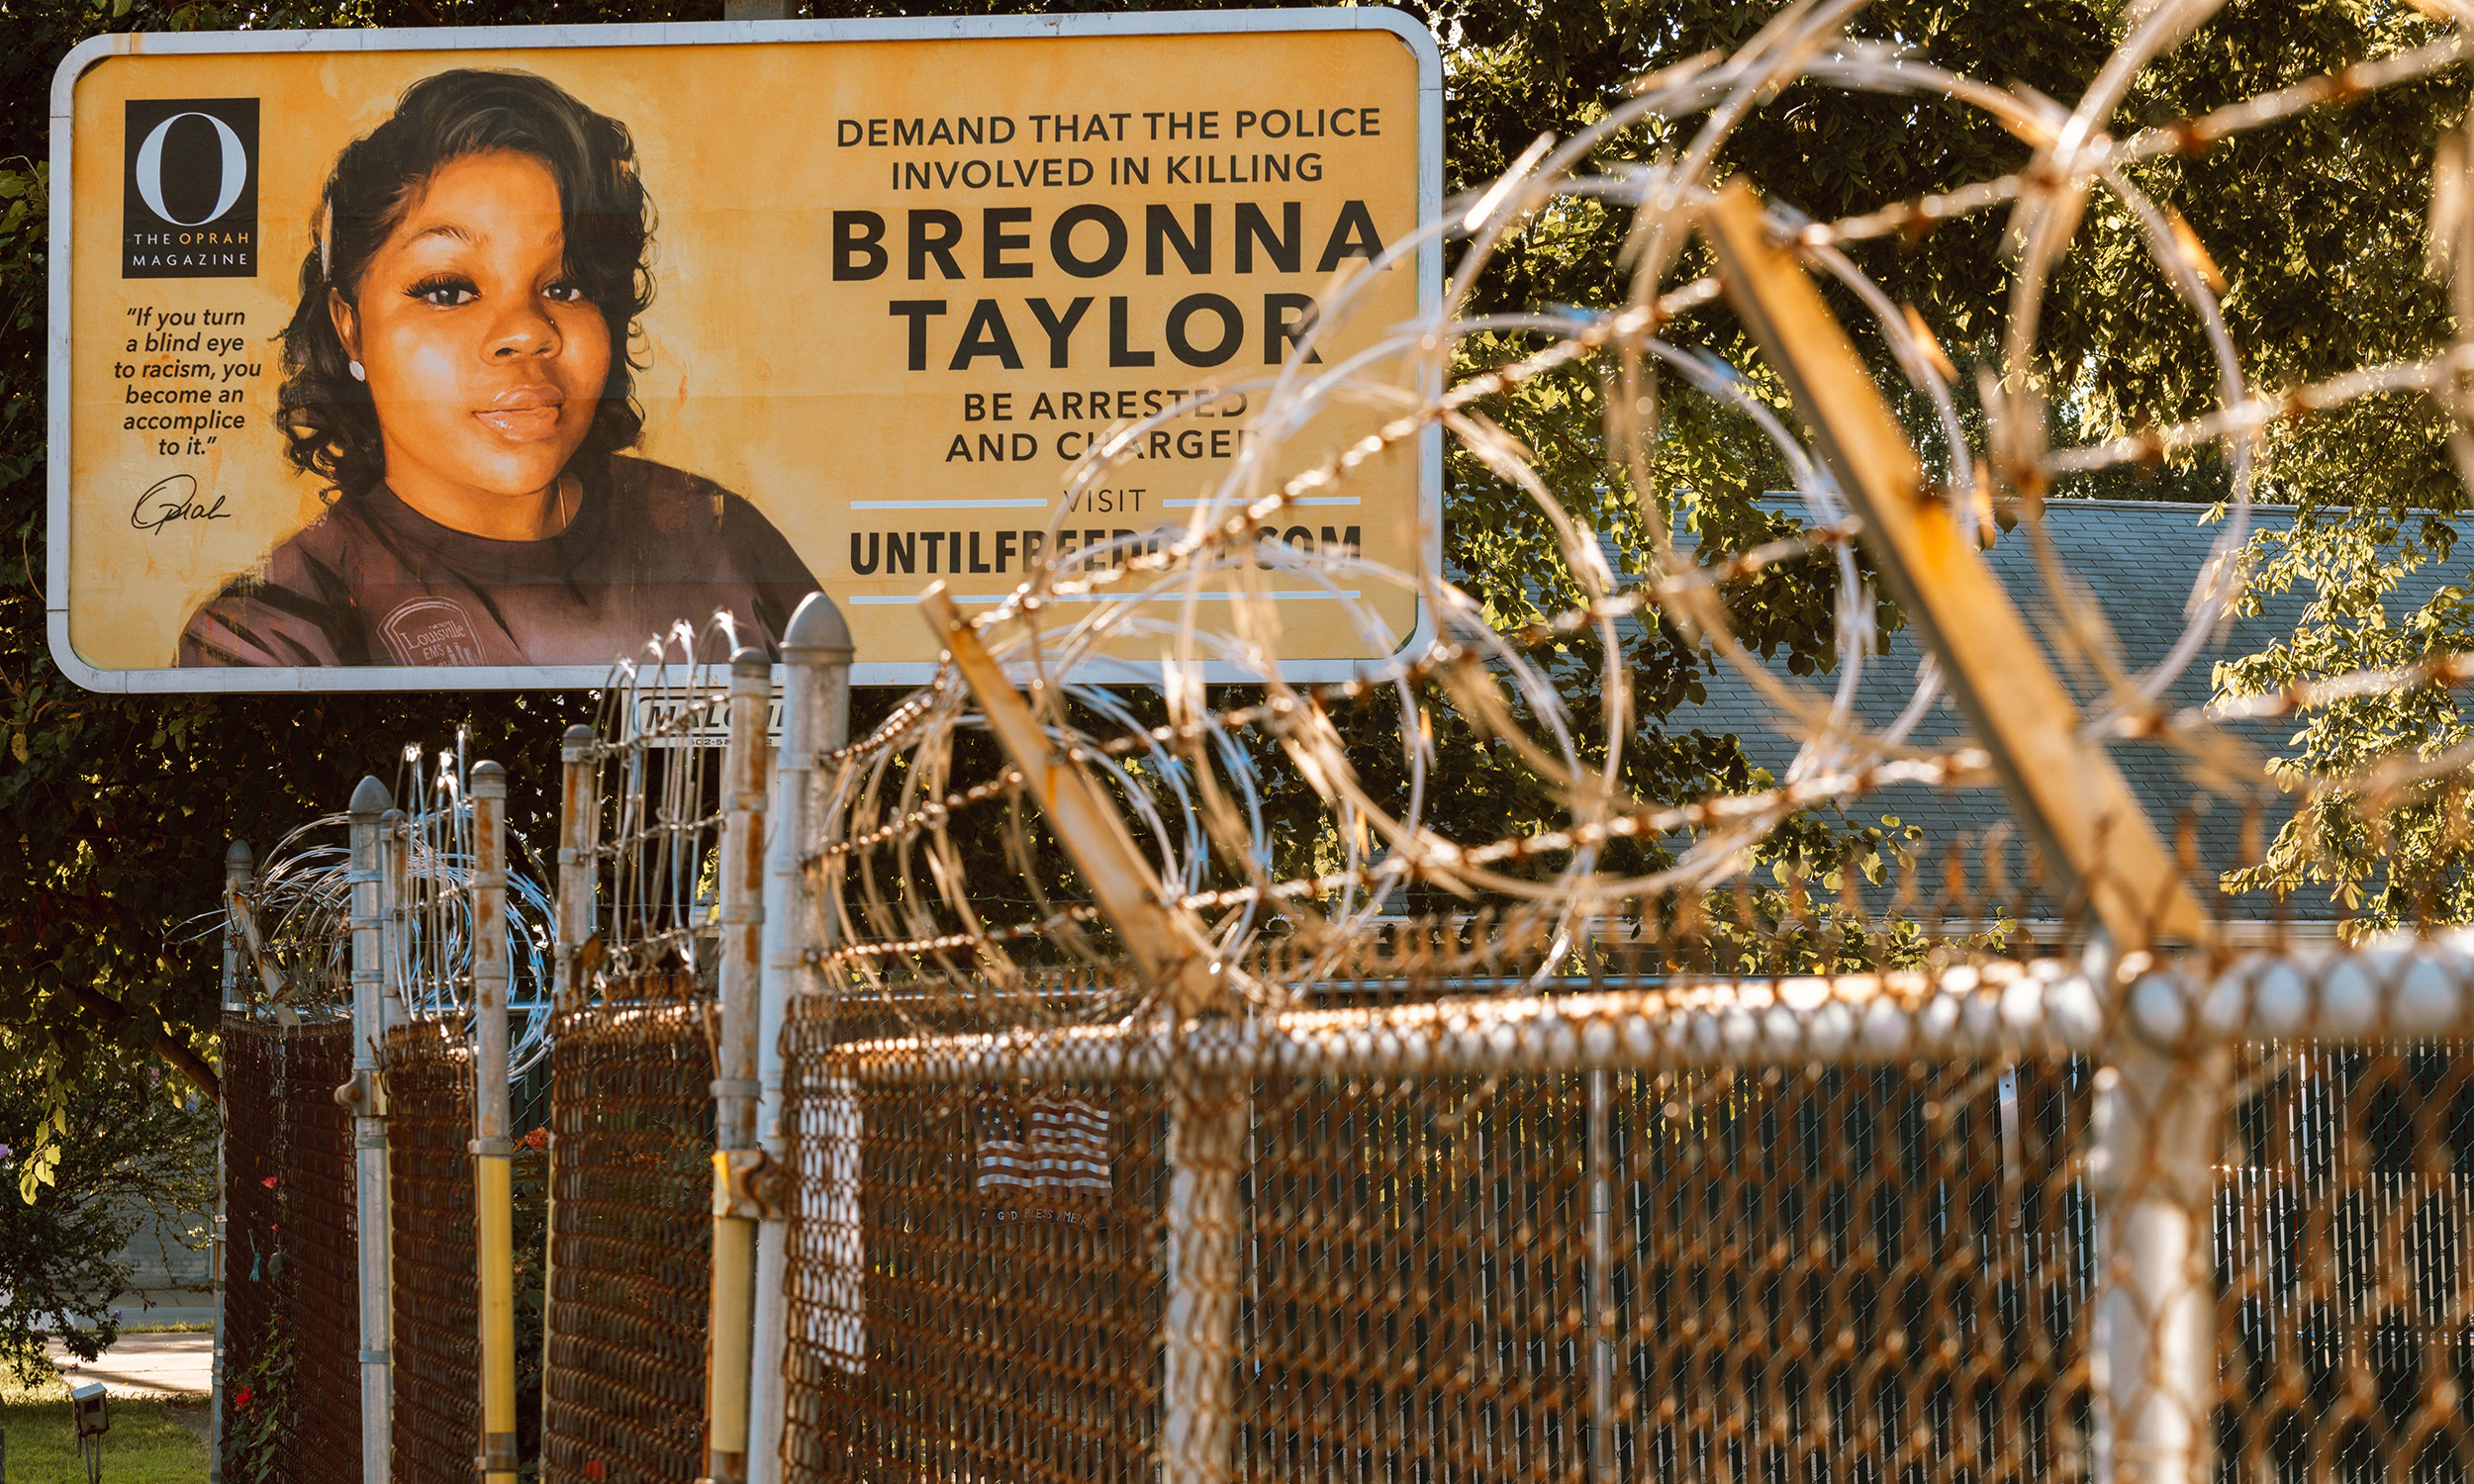 It's not about bad apples. Police shoot people like Jacob Blake because of a bad system.